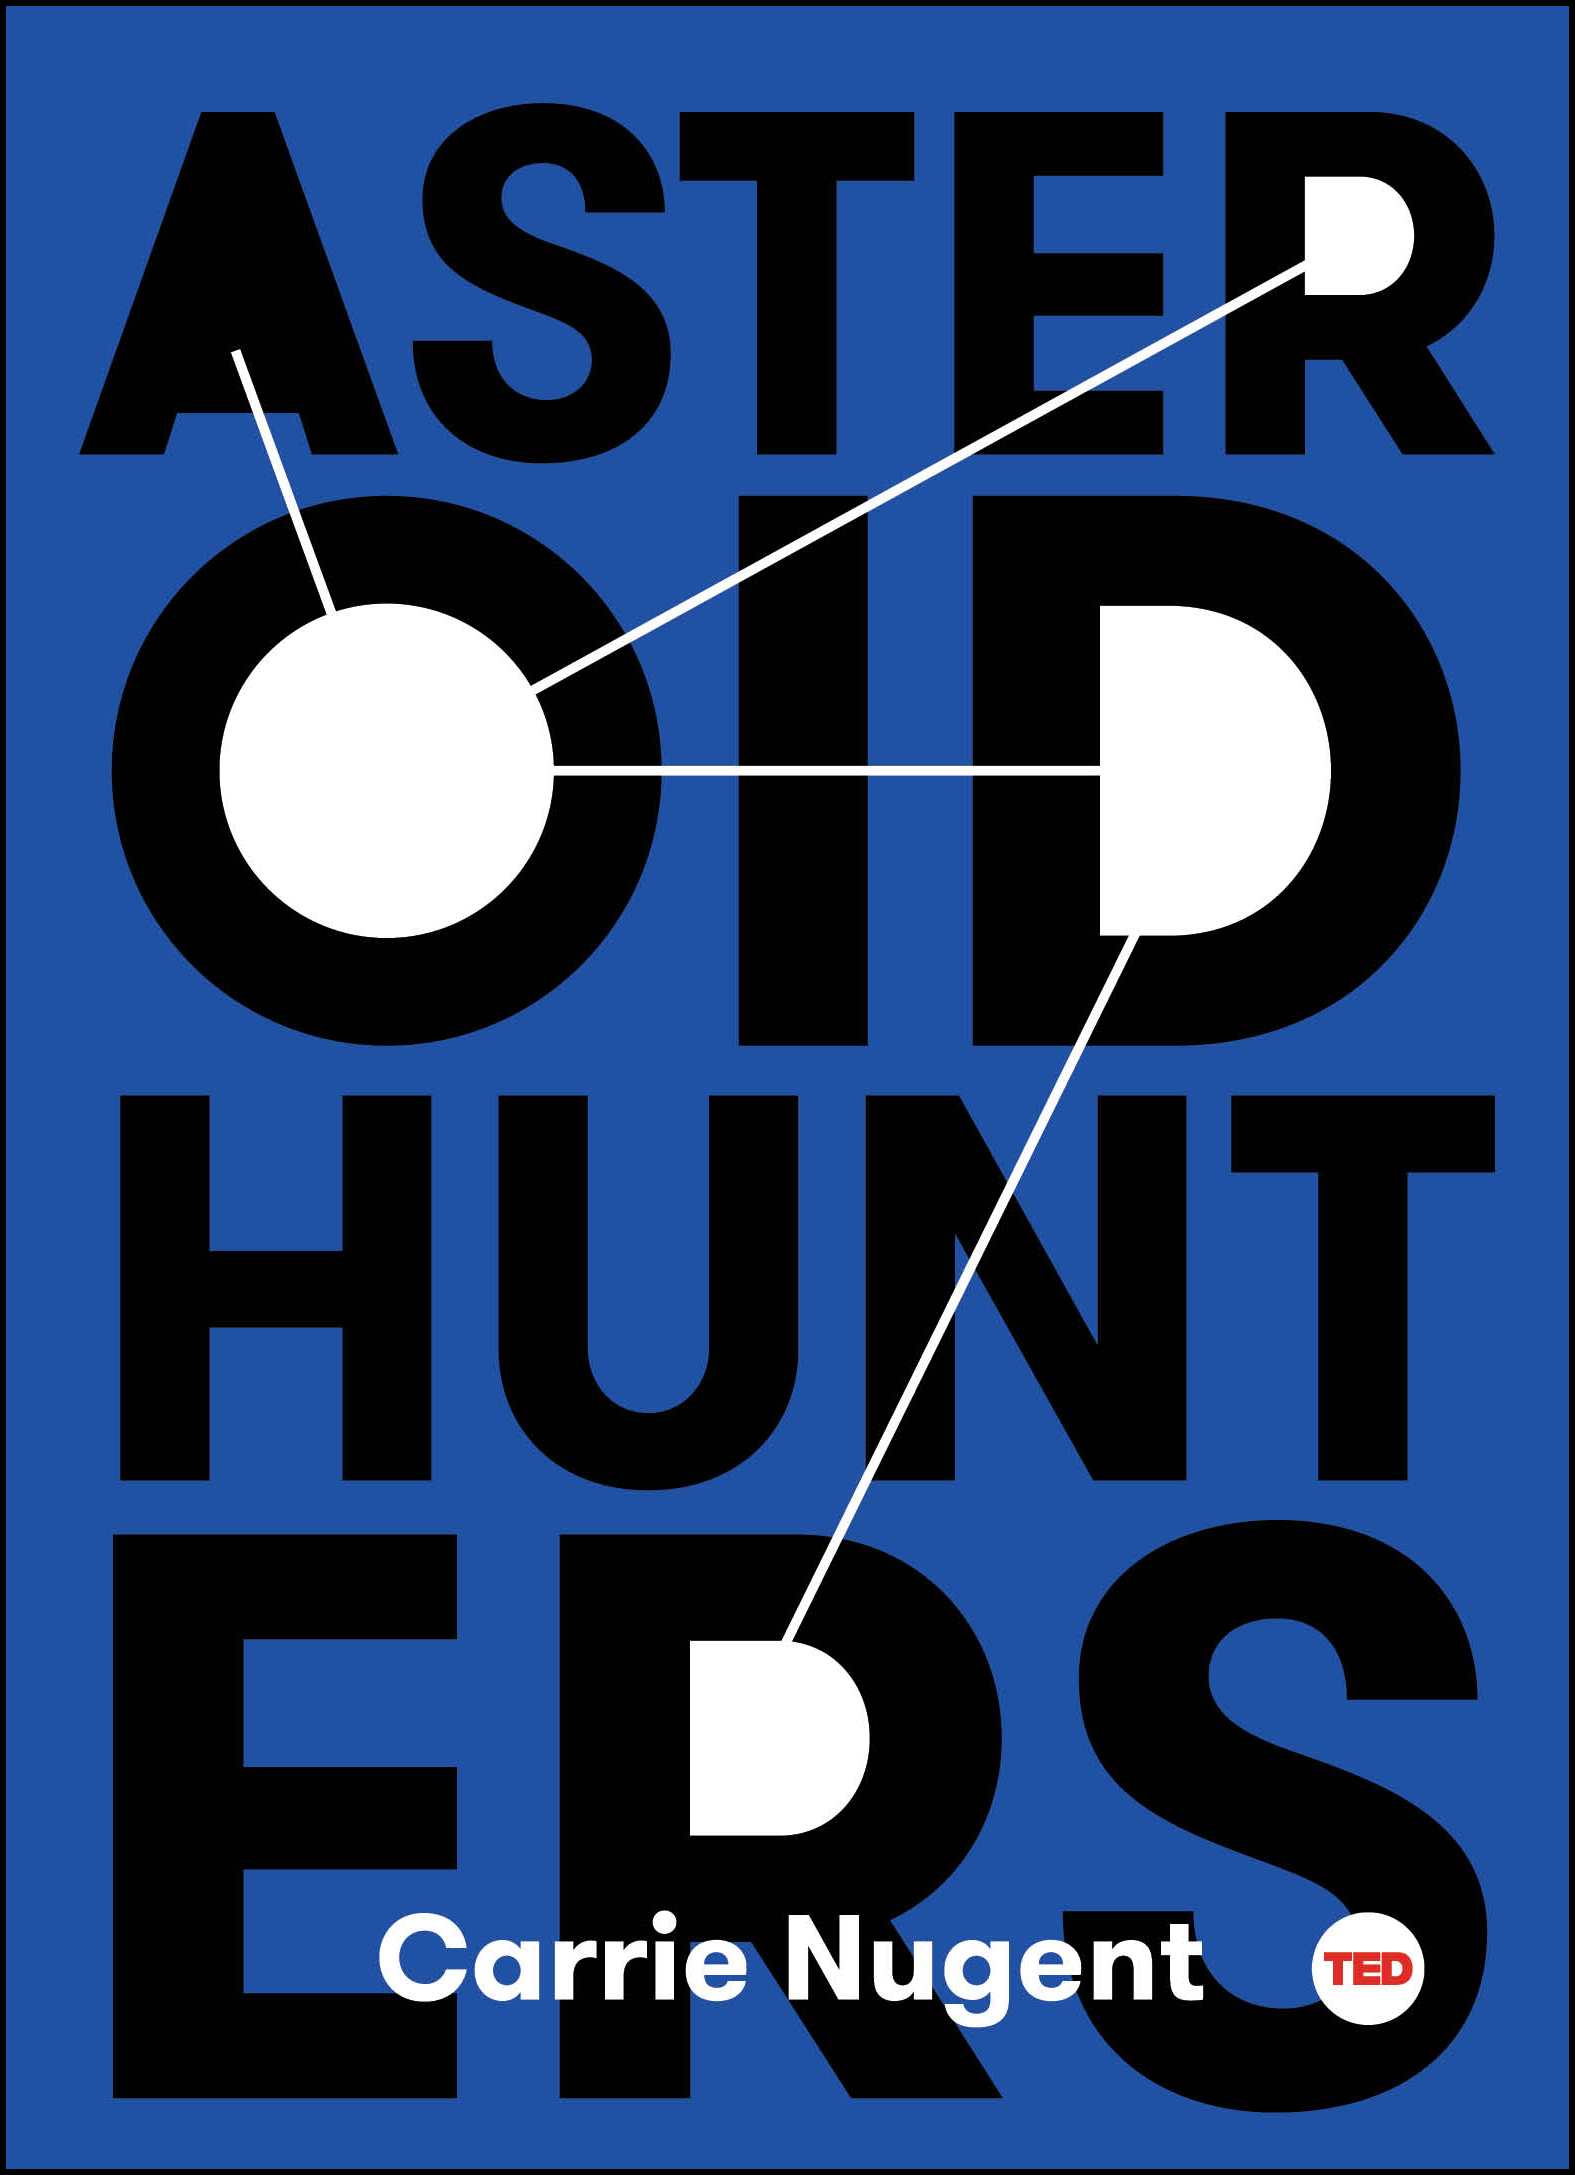 """As part of the 2016  TED Fellows  class, I got to meet cool people and I got to talk about asteroids. My TED talk is now online ( watch it here! ) and the companion book, """"Asteroid Hunters"""", by me, is now available in the US, UK, Canada, Australia, and India. There's also e-book and audiobook versions. This bonus episode contains an excerpt from """"Asteroid Hunters"""".  """"Asteroid Hunters"""" is available at  Amazon ,  Barnes & Noble ,  IndieBound , and as an  iBook . An audiobook version will also be available."""